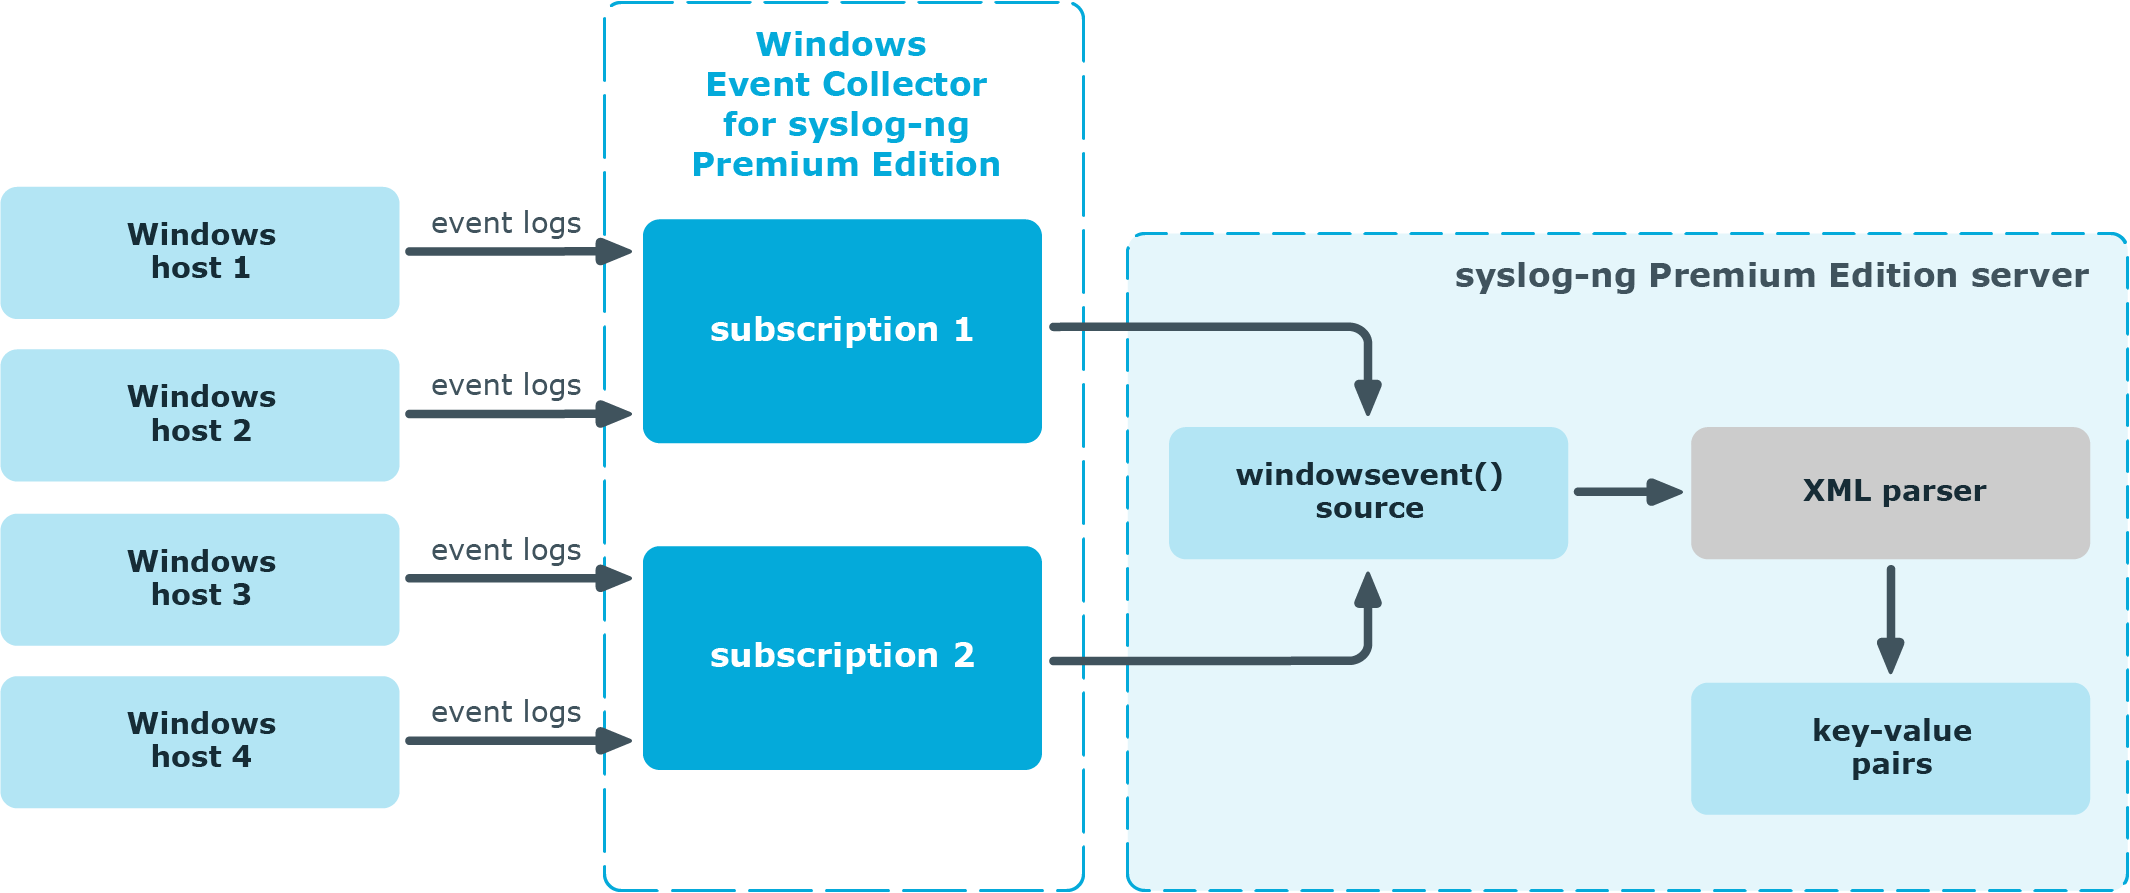 syslog-ng Premium Edition 7 0 9 - Windows Event Collector